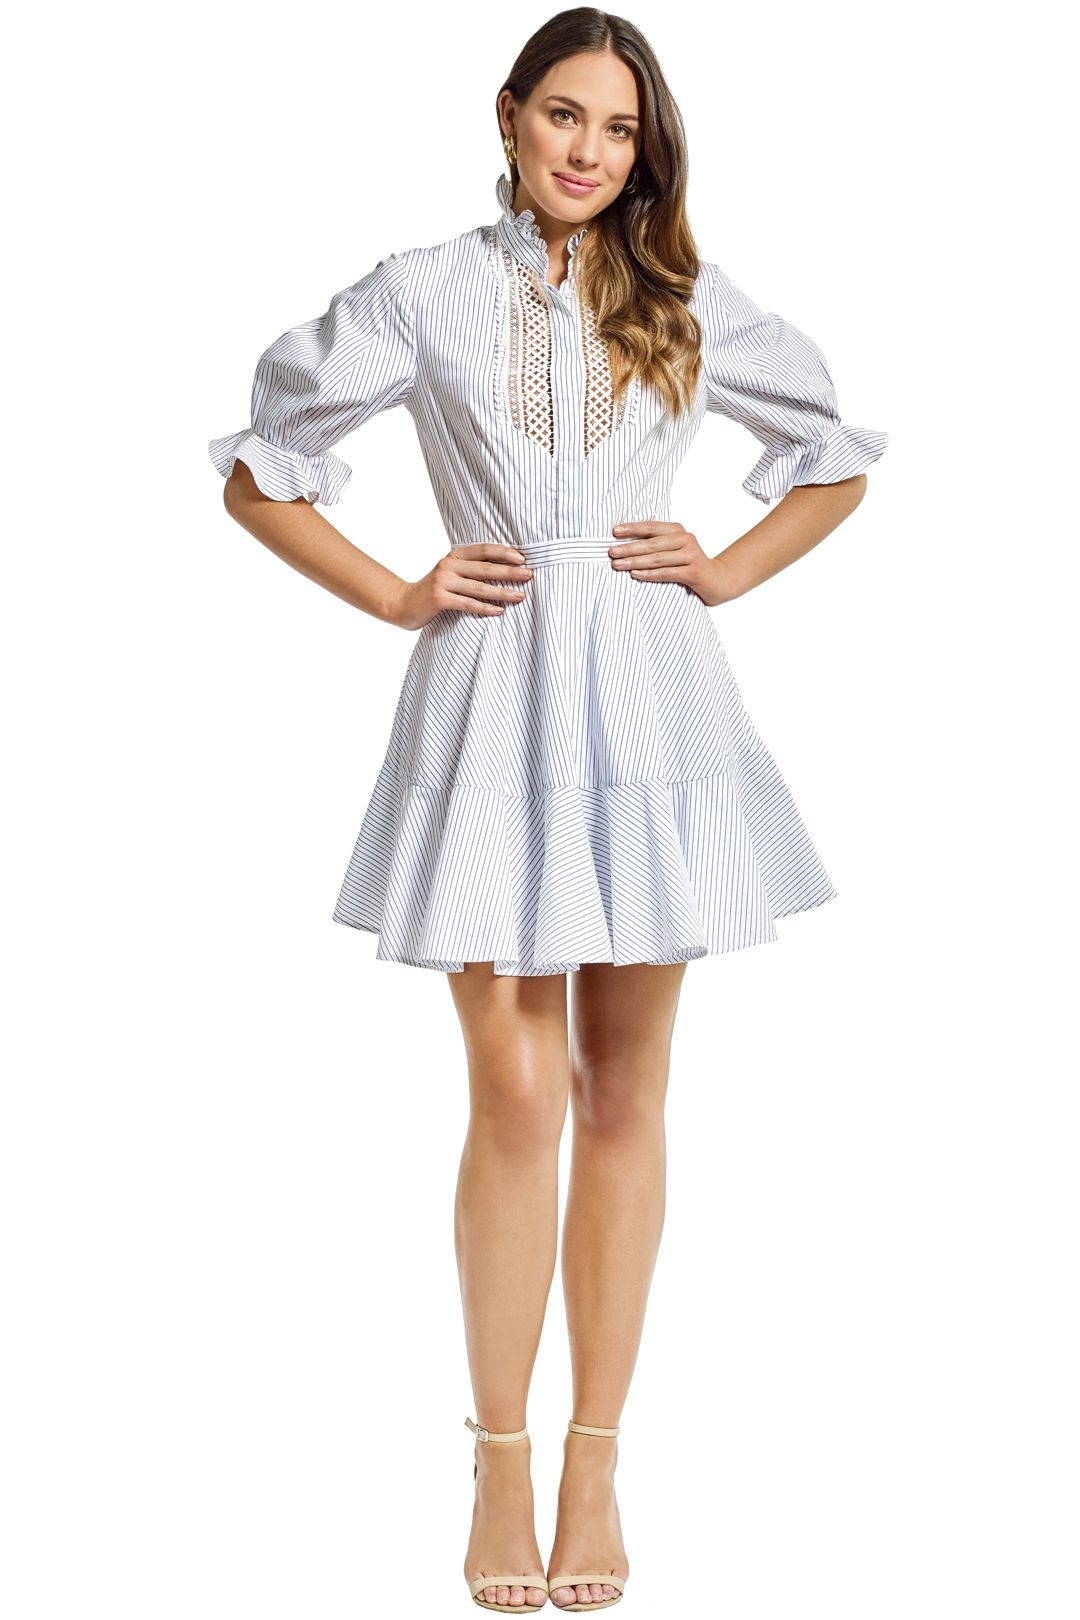 Lover - Abbey Trim Dress - White - Front